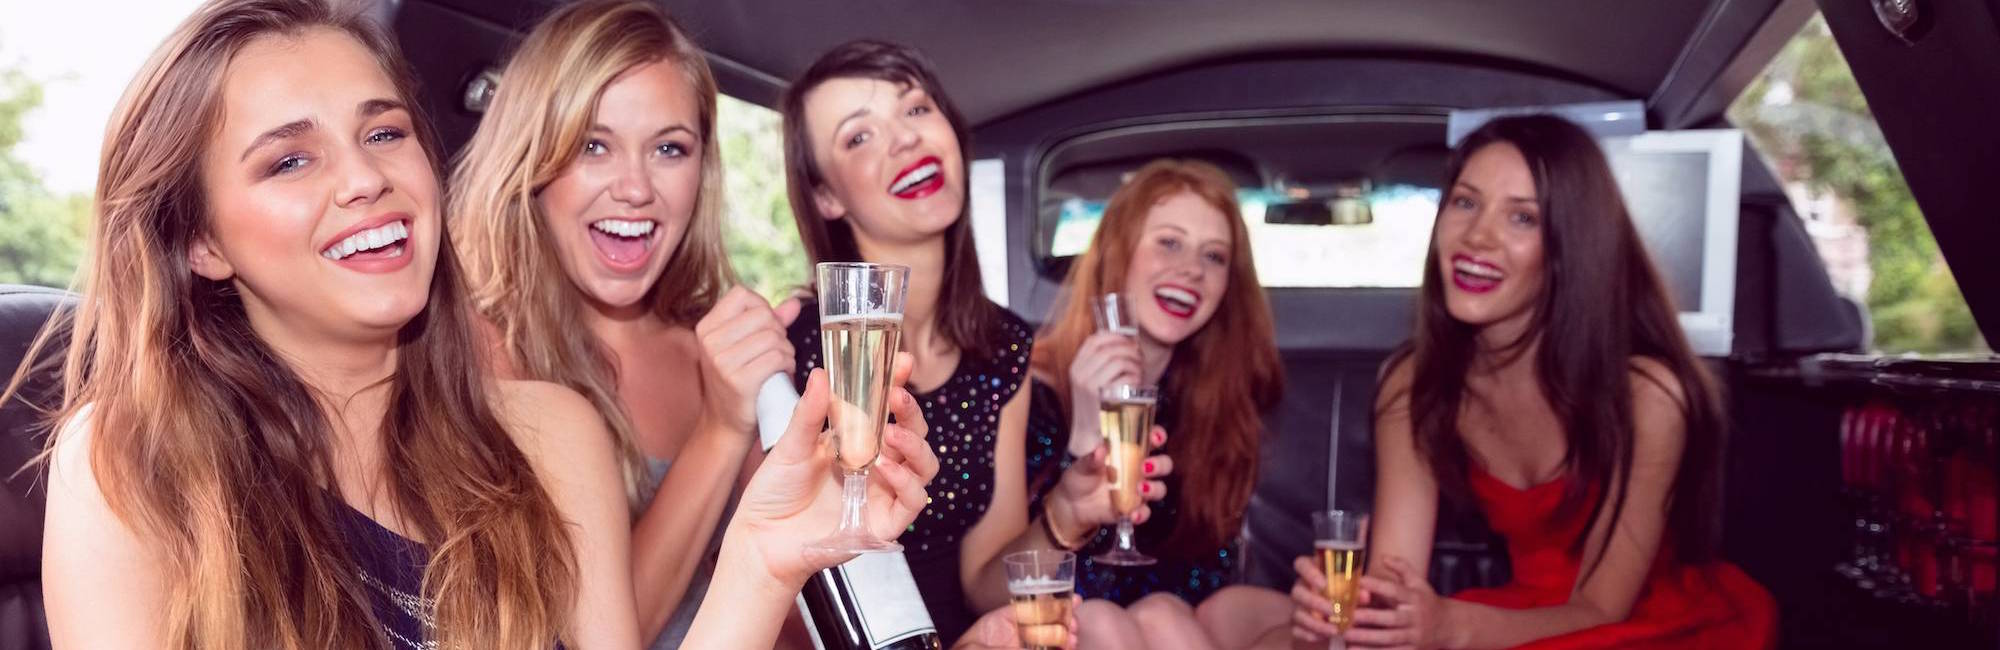 party limousine service brooklyn